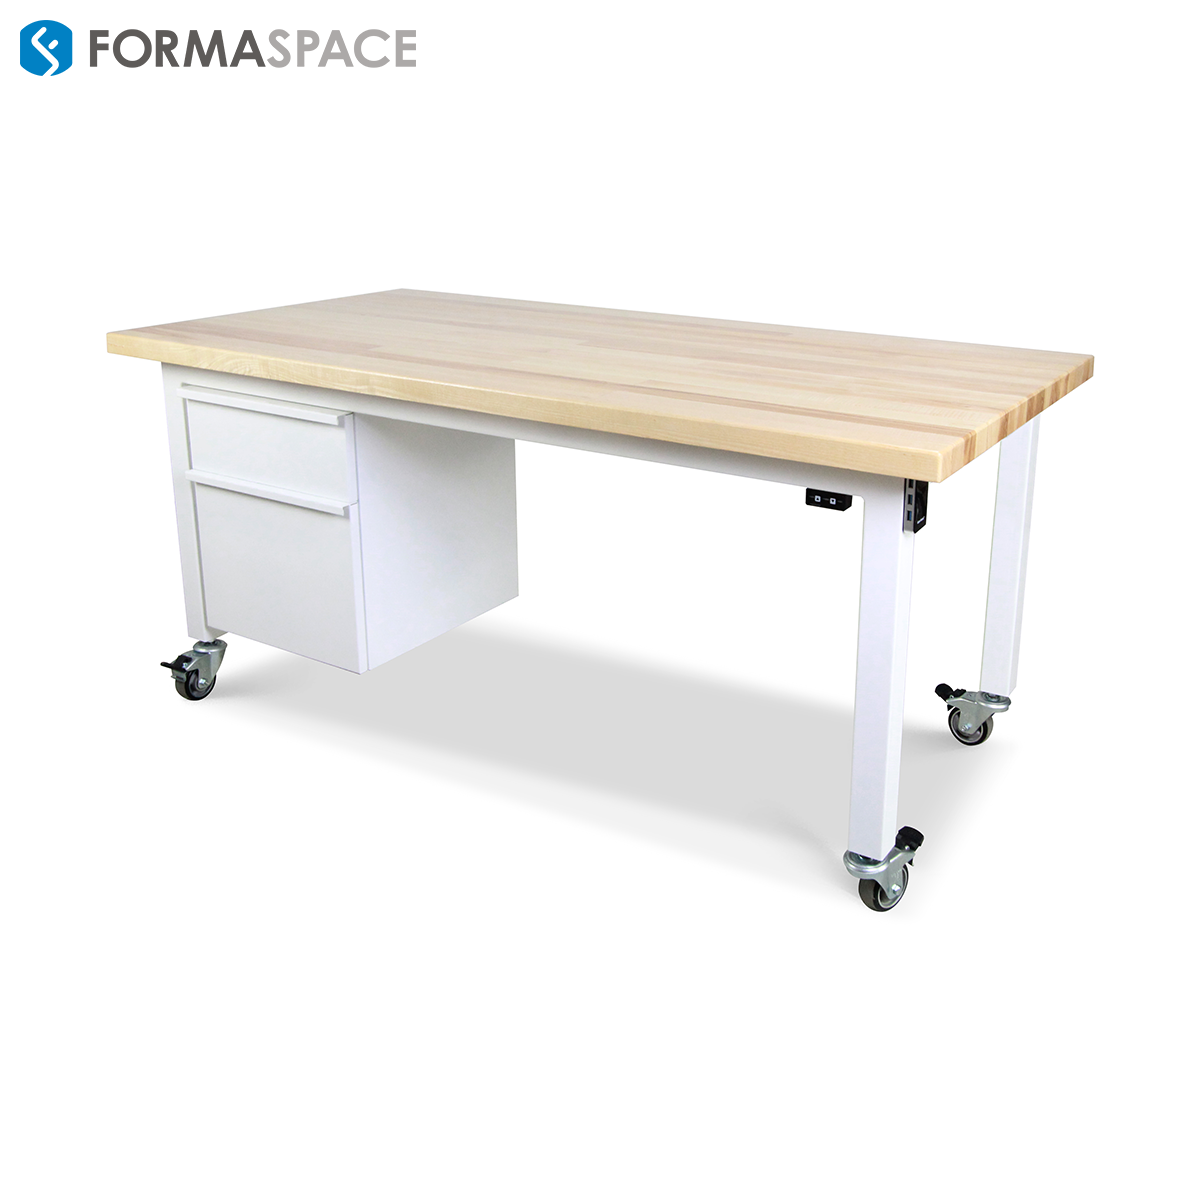 height-adjustable-mobile-desk_preview